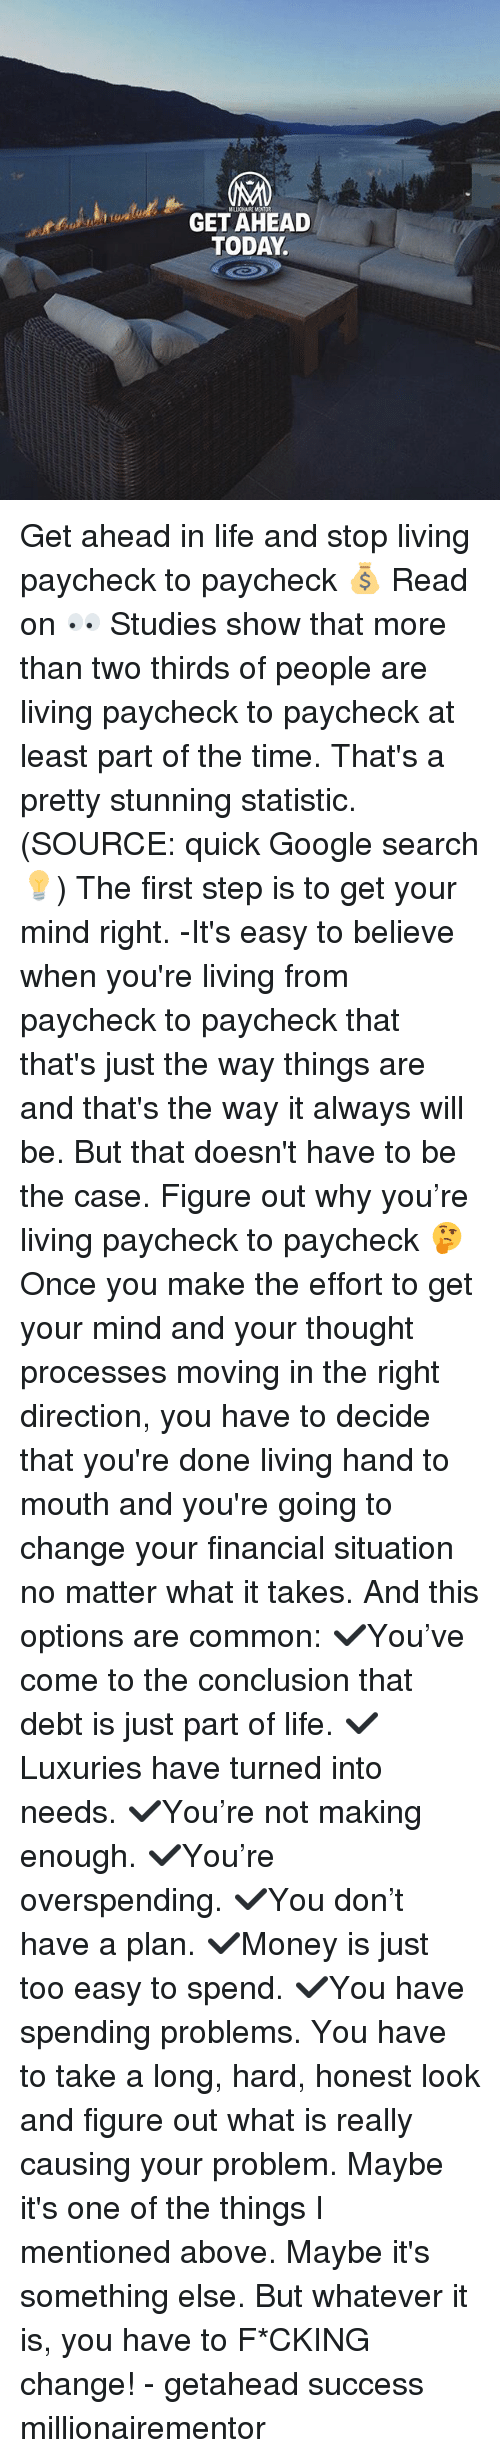 moving in: MILLIOHAIRE MENT  GET AHEAD  TODAY. Get ahead in life and stop living paycheck to paycheck 💰 Read on 👀 Studies show that more than two thirds of people are living paycheck to paycheck at least part of the time. That's a pretty stunning statistic. (SOURCE: quick Google search💡) The first step is to get your mind right. -It's easy to believe when you're living from paycheck to paycheck that that's just the way things are and that's the way it always will be. But that doesn't have to be the case. Figure out why you're living paycheck to paycheck 🤔 Once you make the effort to get your mind and your thought processes moving in the right direction, you have to decide that you're done living hand to mouth and you're going to change your financial situation no matter what it takes. And this options are common: ✔️You've come to the conclusion that debt is just part of life. ✔️Luxuries have turned into needs. ✔️You're not making enough. ✔️You're overspending. ✔️You don't have a plan. ✔️Money is just too easy to spend. ✔️You have spending problems. You have to take a long, hard, honest look and figure out what is really causing your problem. Maybe it's one of the things I mentioned above. Maybe it's something else. But whatever it is, you have to F*CKING change! - getahead success millionairementor